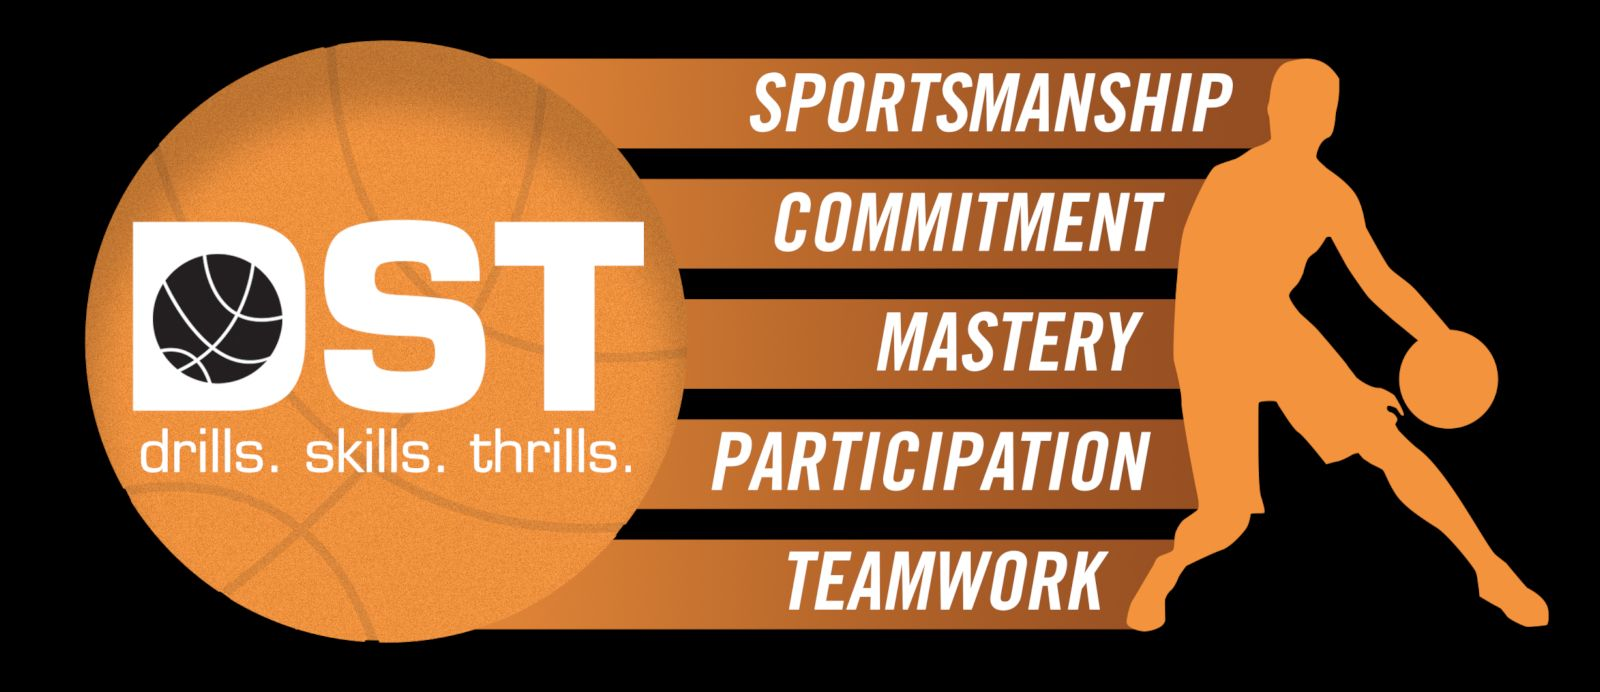 DST Basketball - Sportsmanship, Commitment, Mastery, Participation, Teamwork